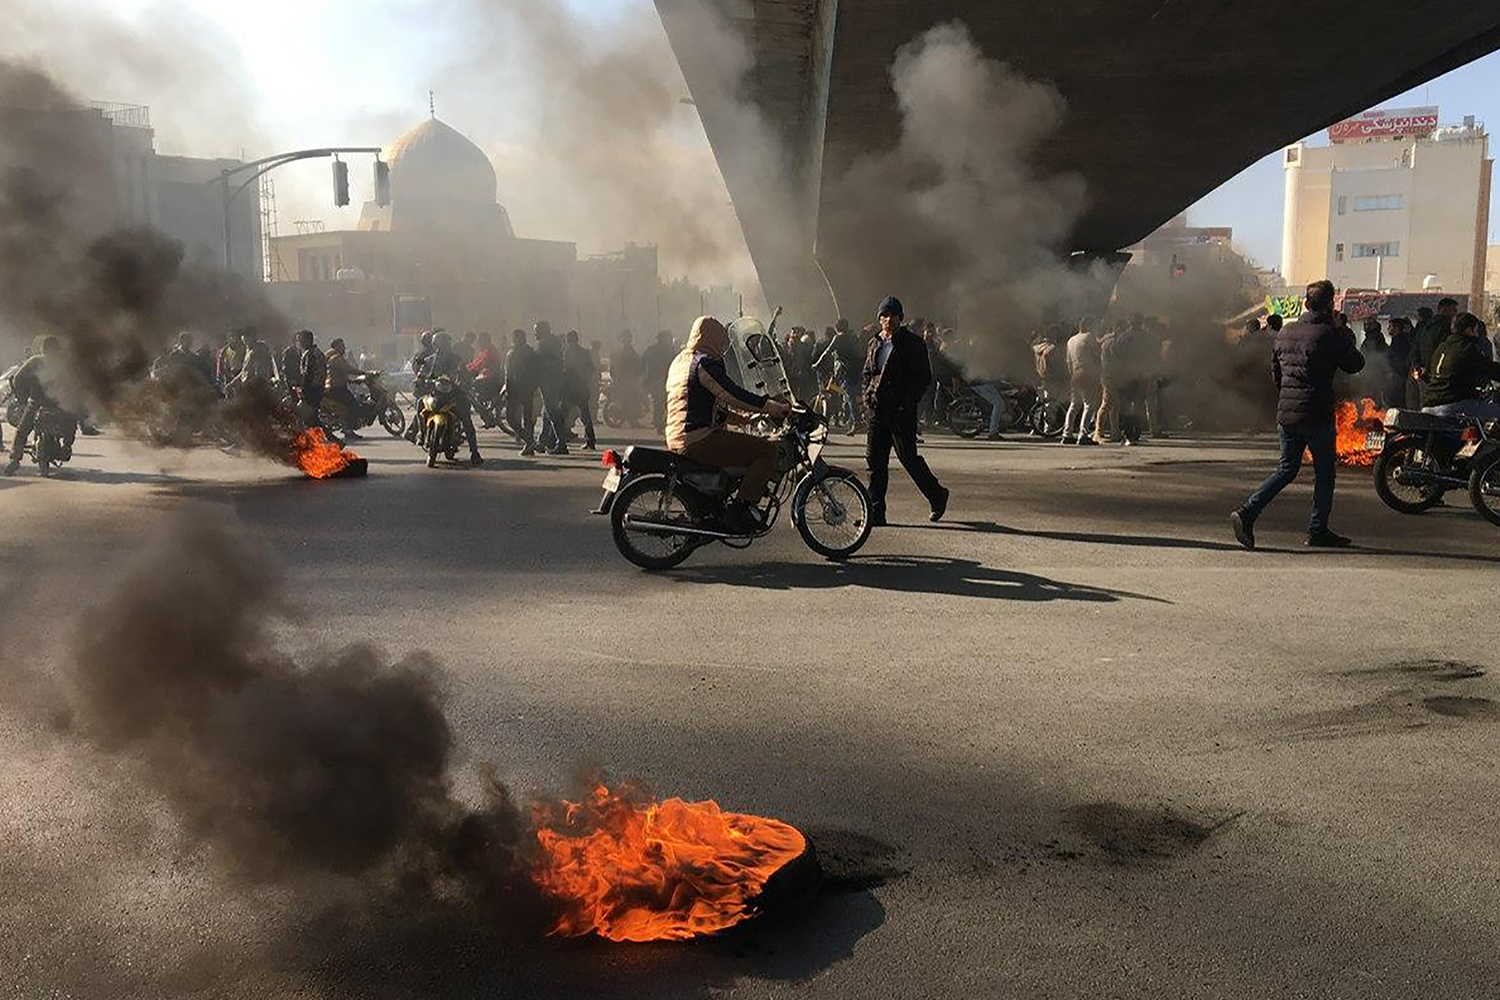 IRAN | Protesters rally amid burning tires during a demonstration against an increase in gasoline prices in the central city of Isfahan on Nov. 16. -/AFP via Getty Images